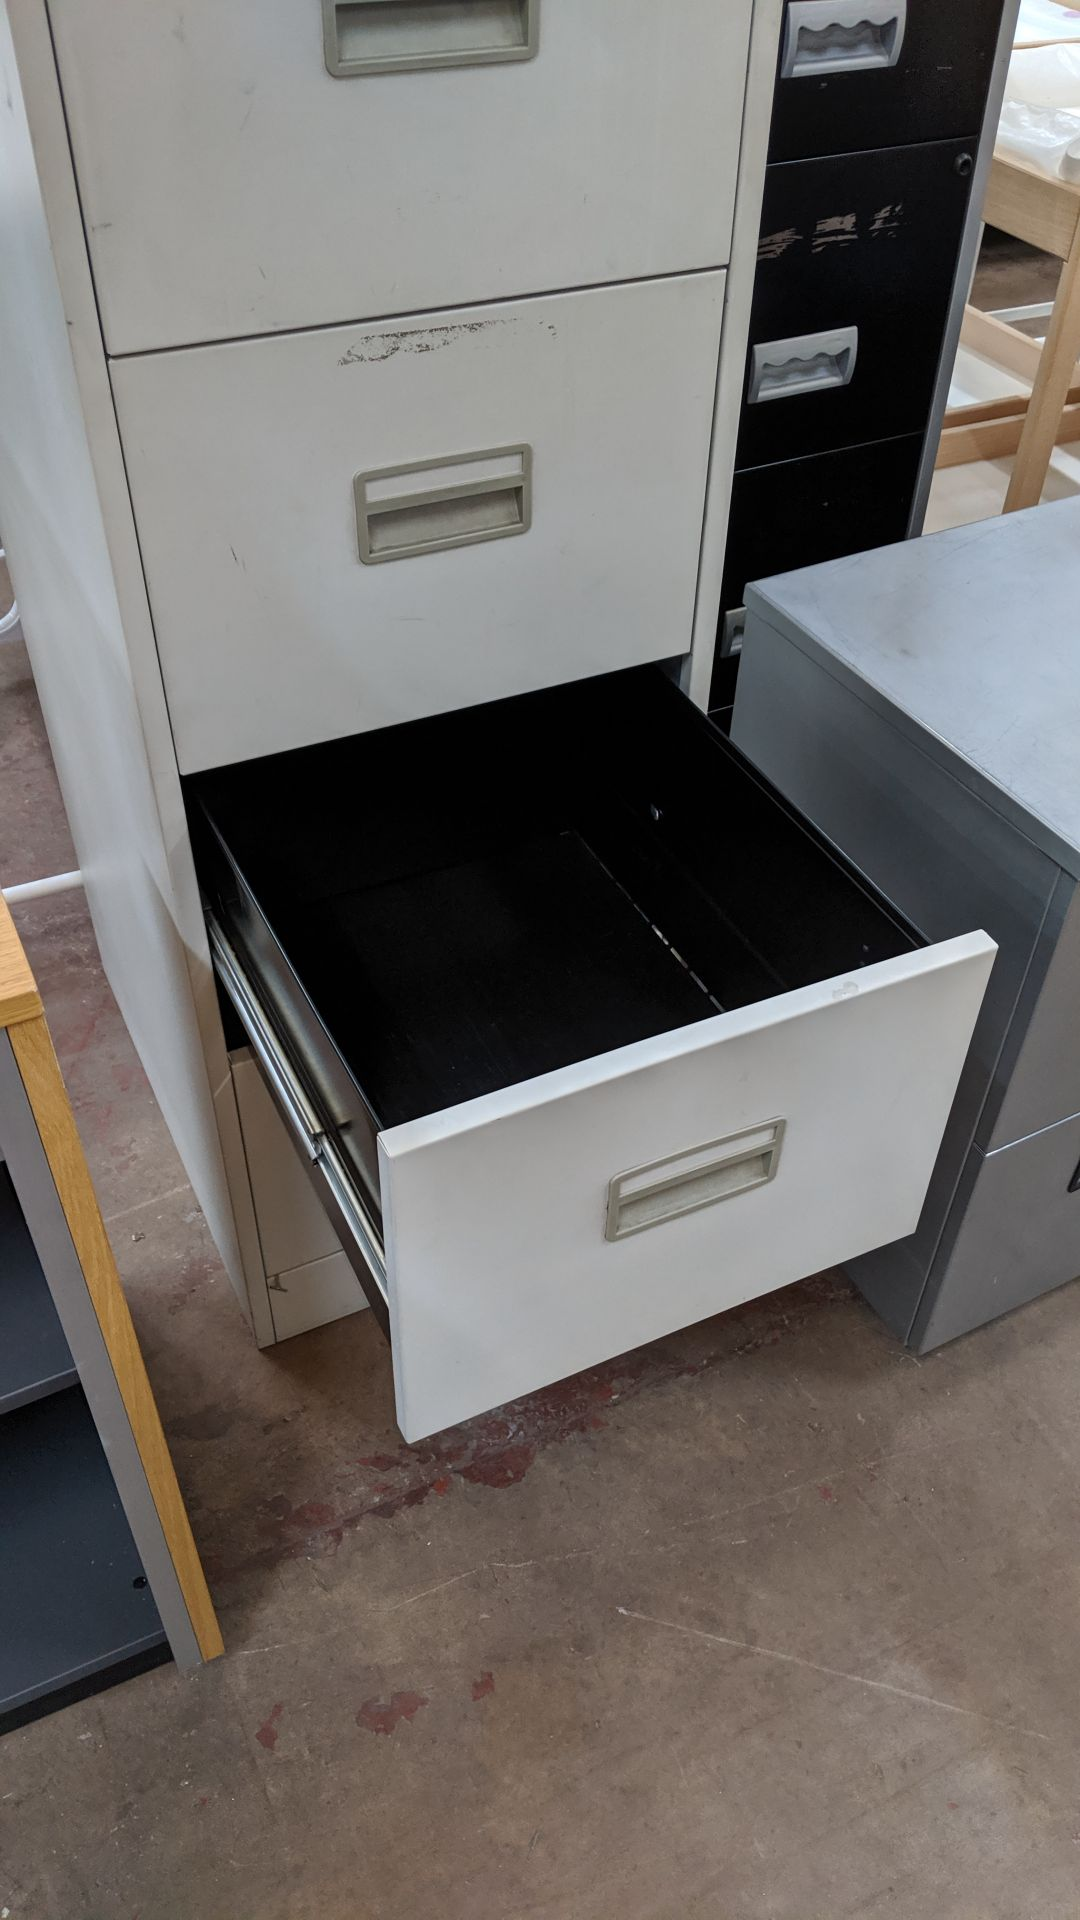 Lot 432 - Metal 4-drawer filing cabinet with key. This is one of a large number of lots used/owned by One To